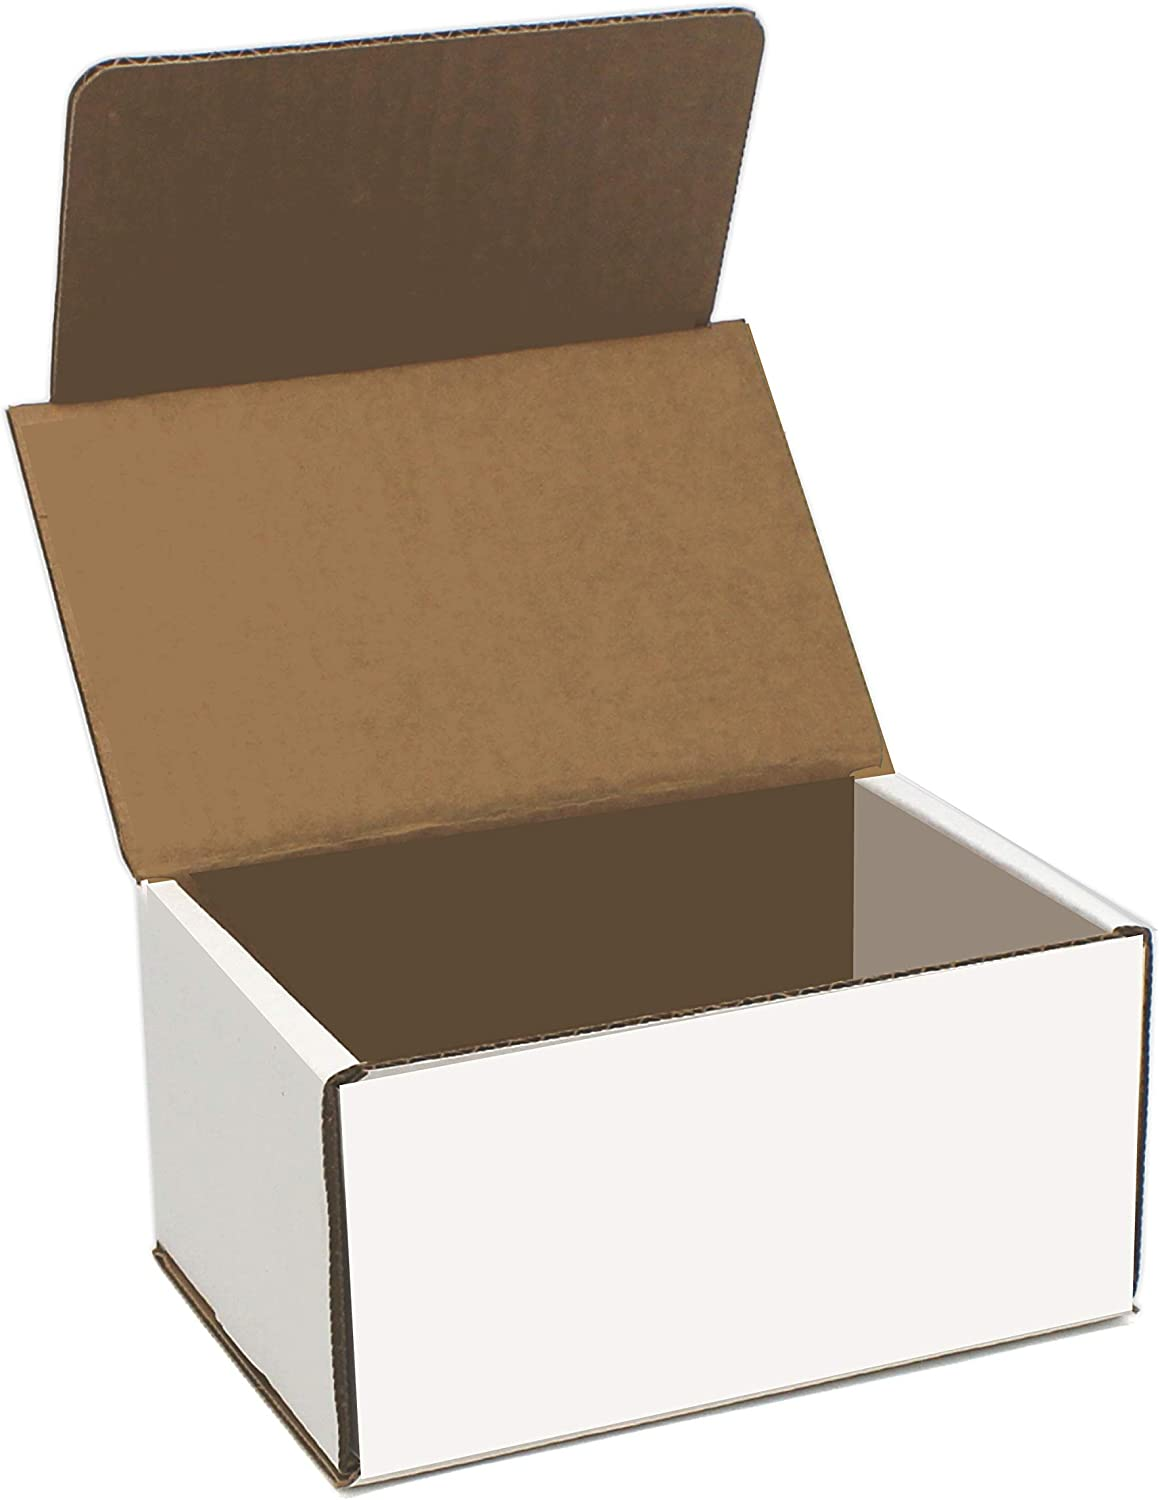 White Cardboard Shipping Box - Pack of 25 Max 72% OFF Whi Sales of SALE items from new works x 4 Inches 6 3